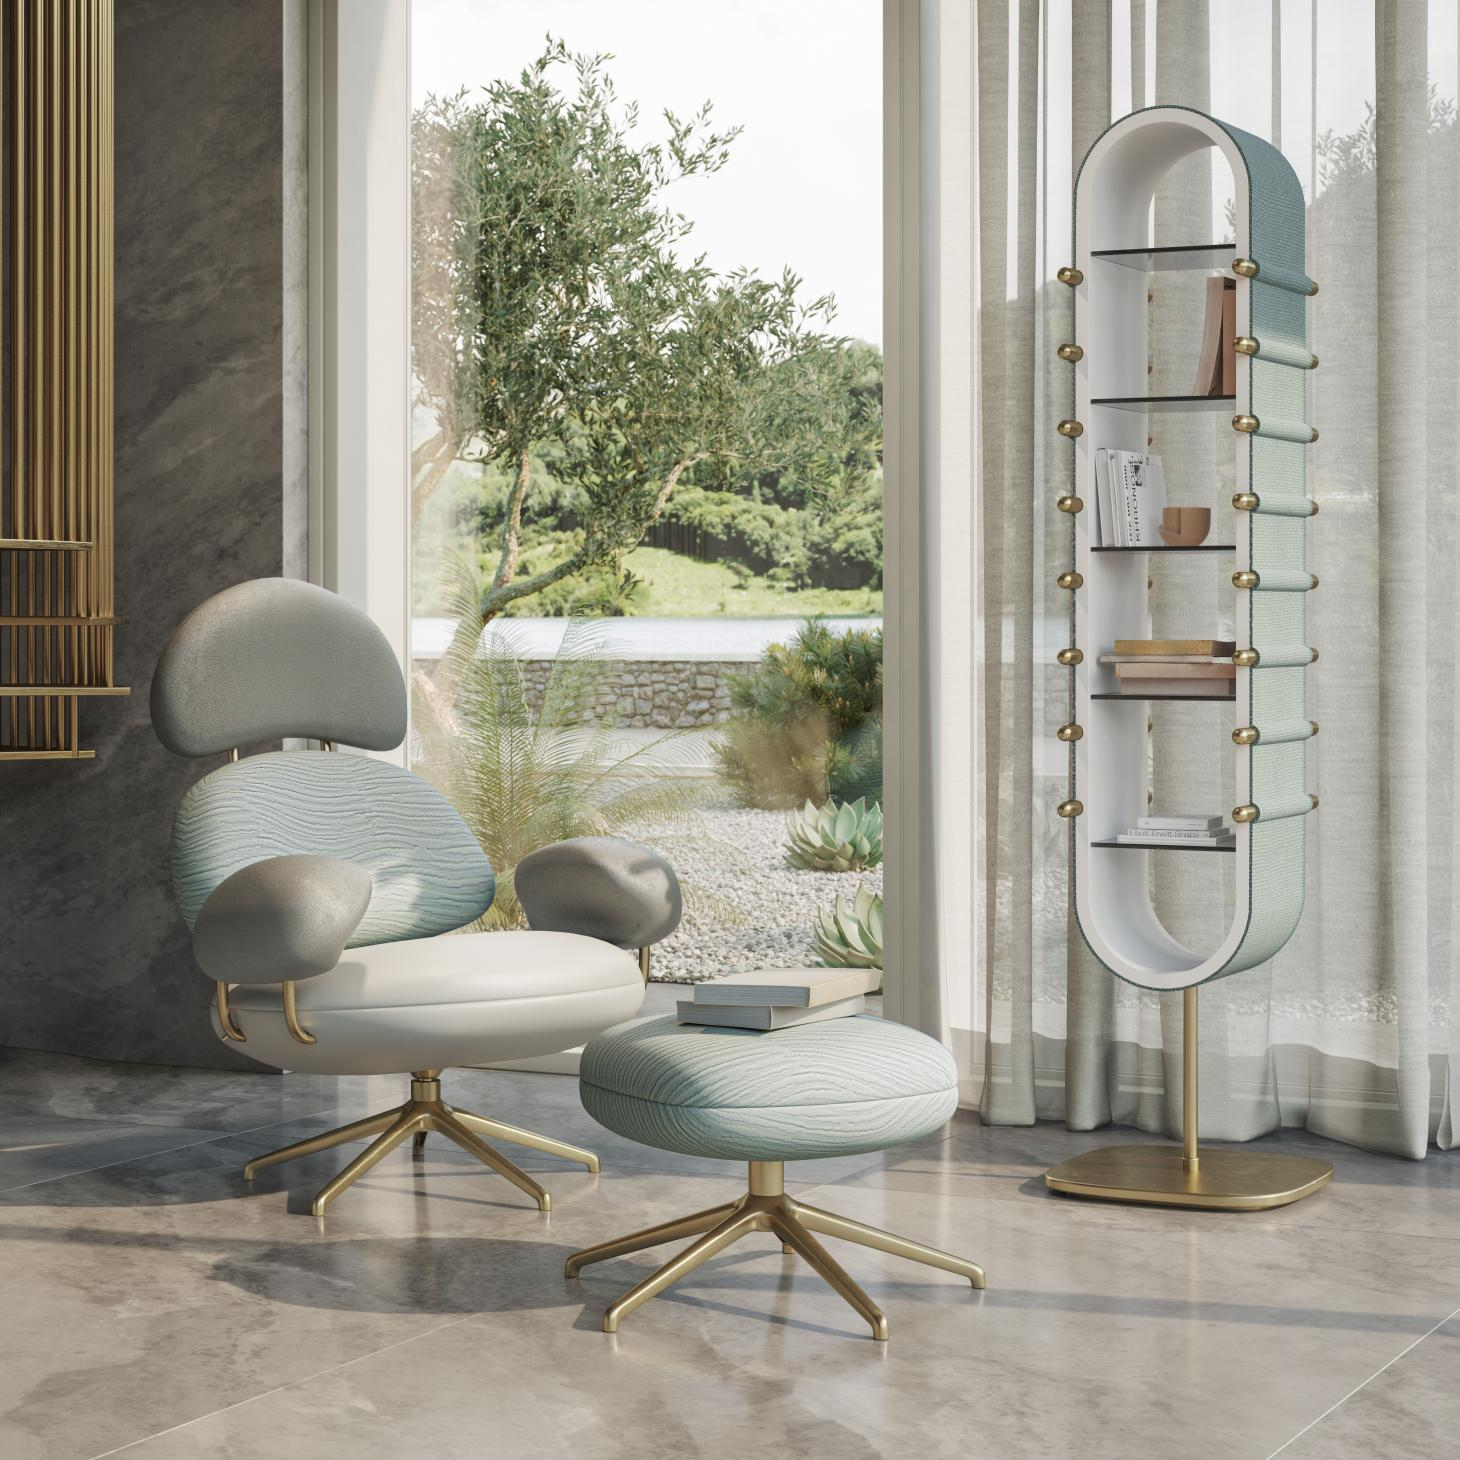 Chair and bookcase by Elena Salmistraro with light blue and white textile